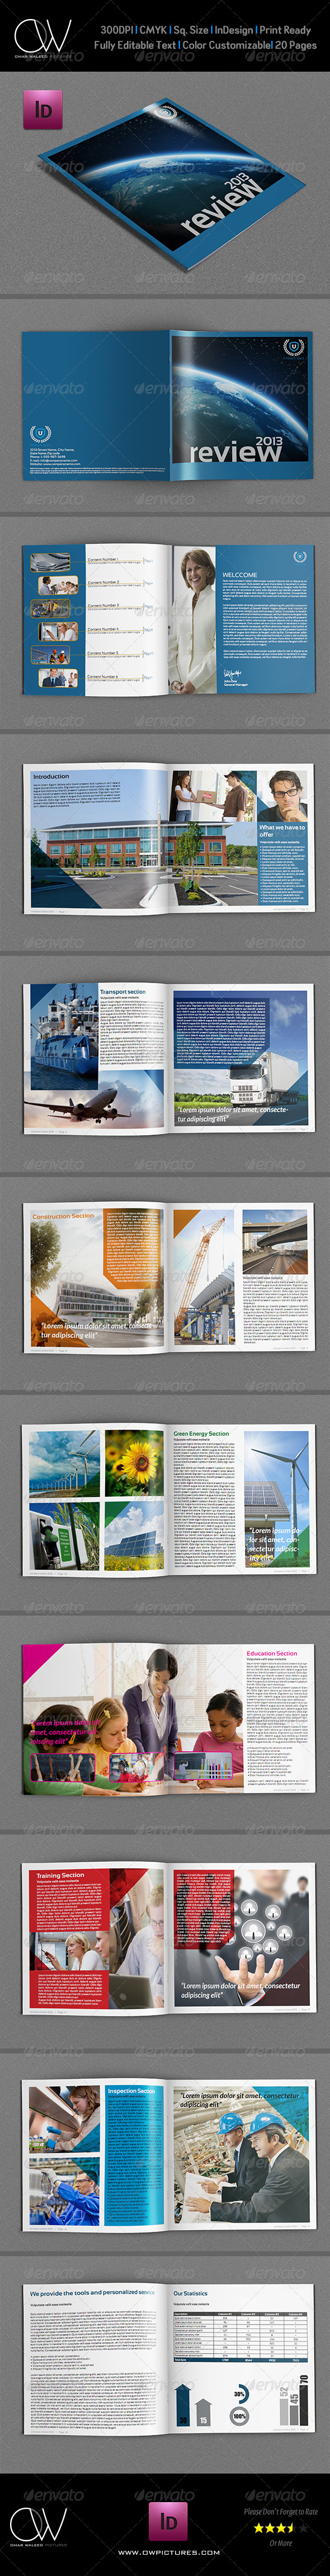 GraphicRiver Company Brochure Template Vol.7 20 Pages 5567531